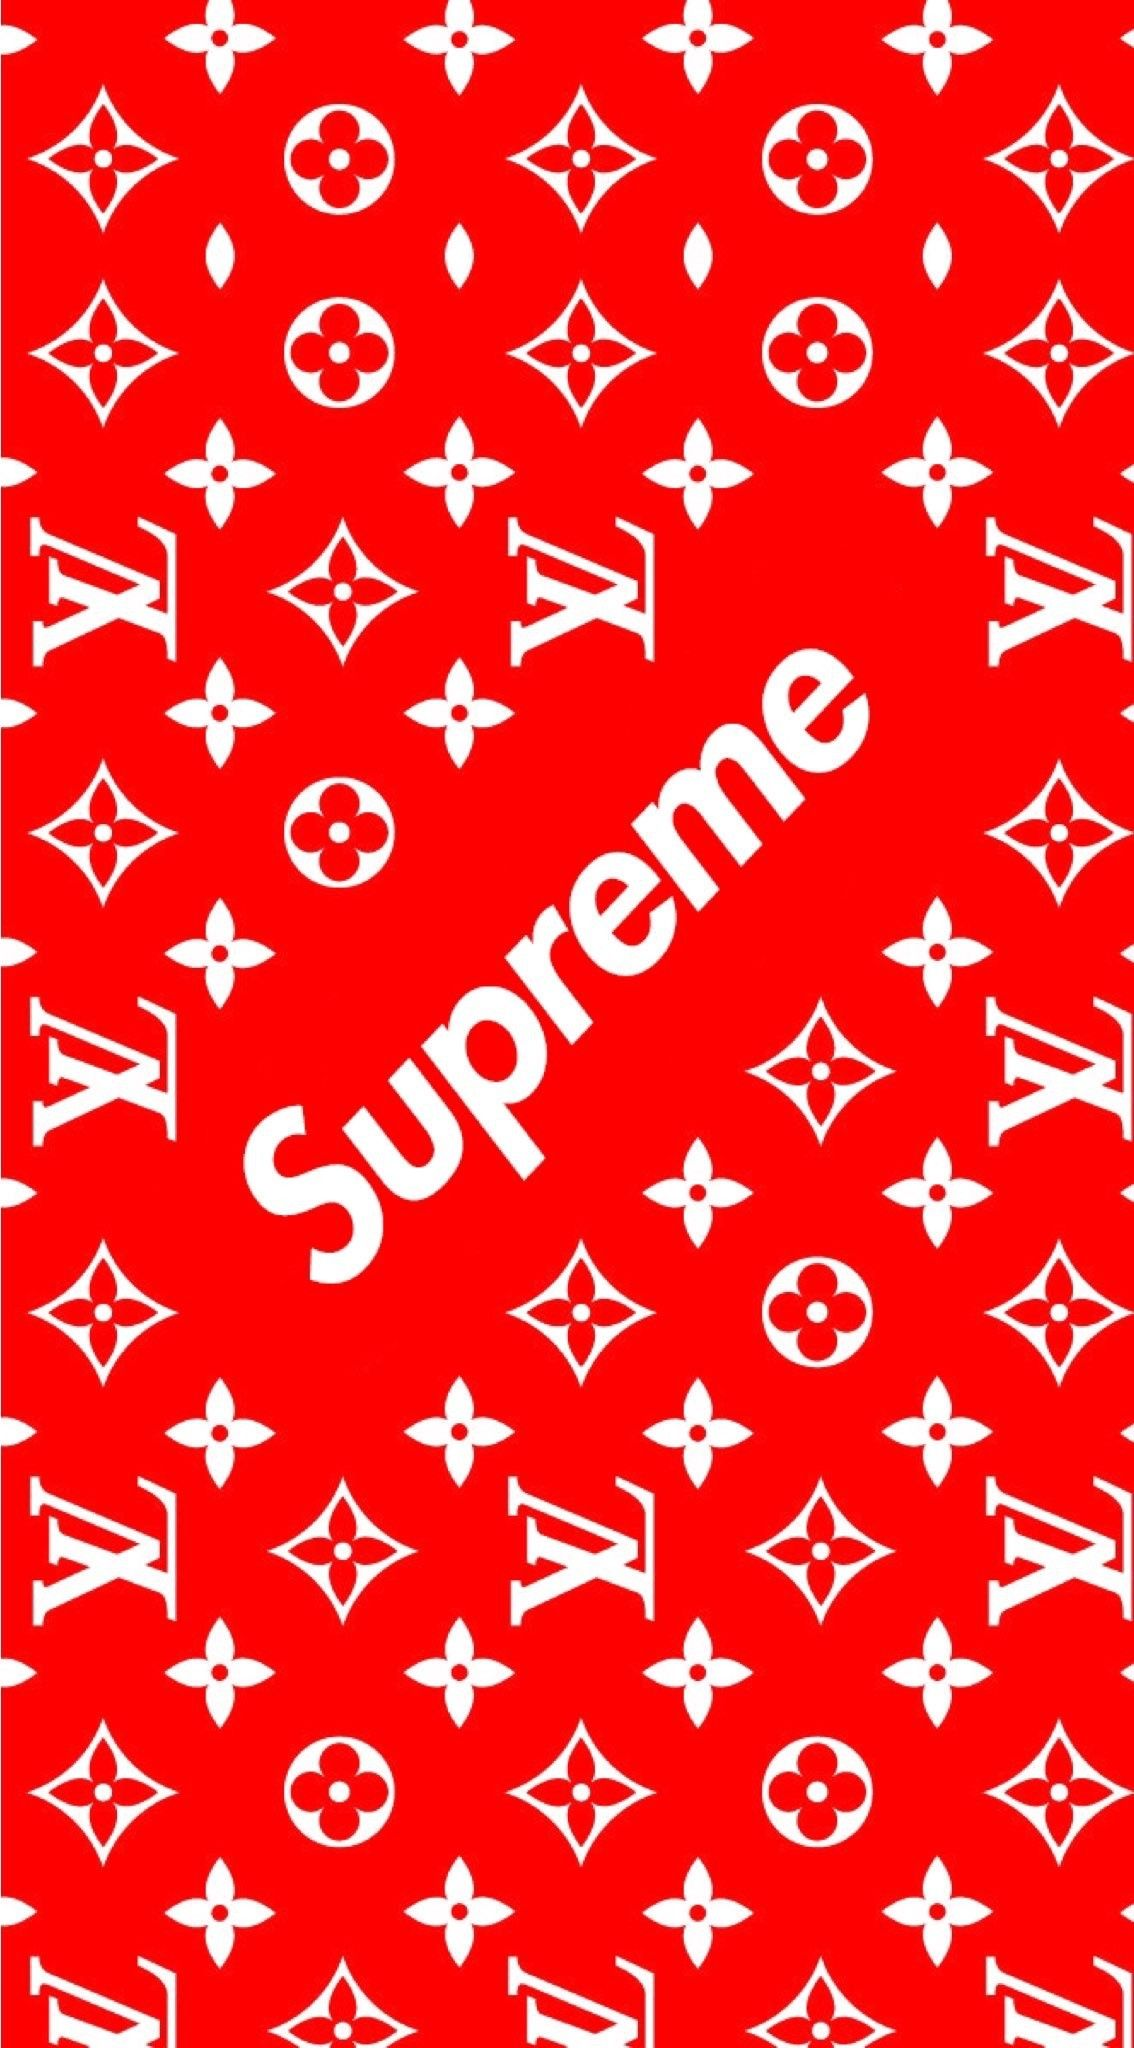 Hypebeast Wallpaper Hd 84 images in Collection Page 1 1134x2048